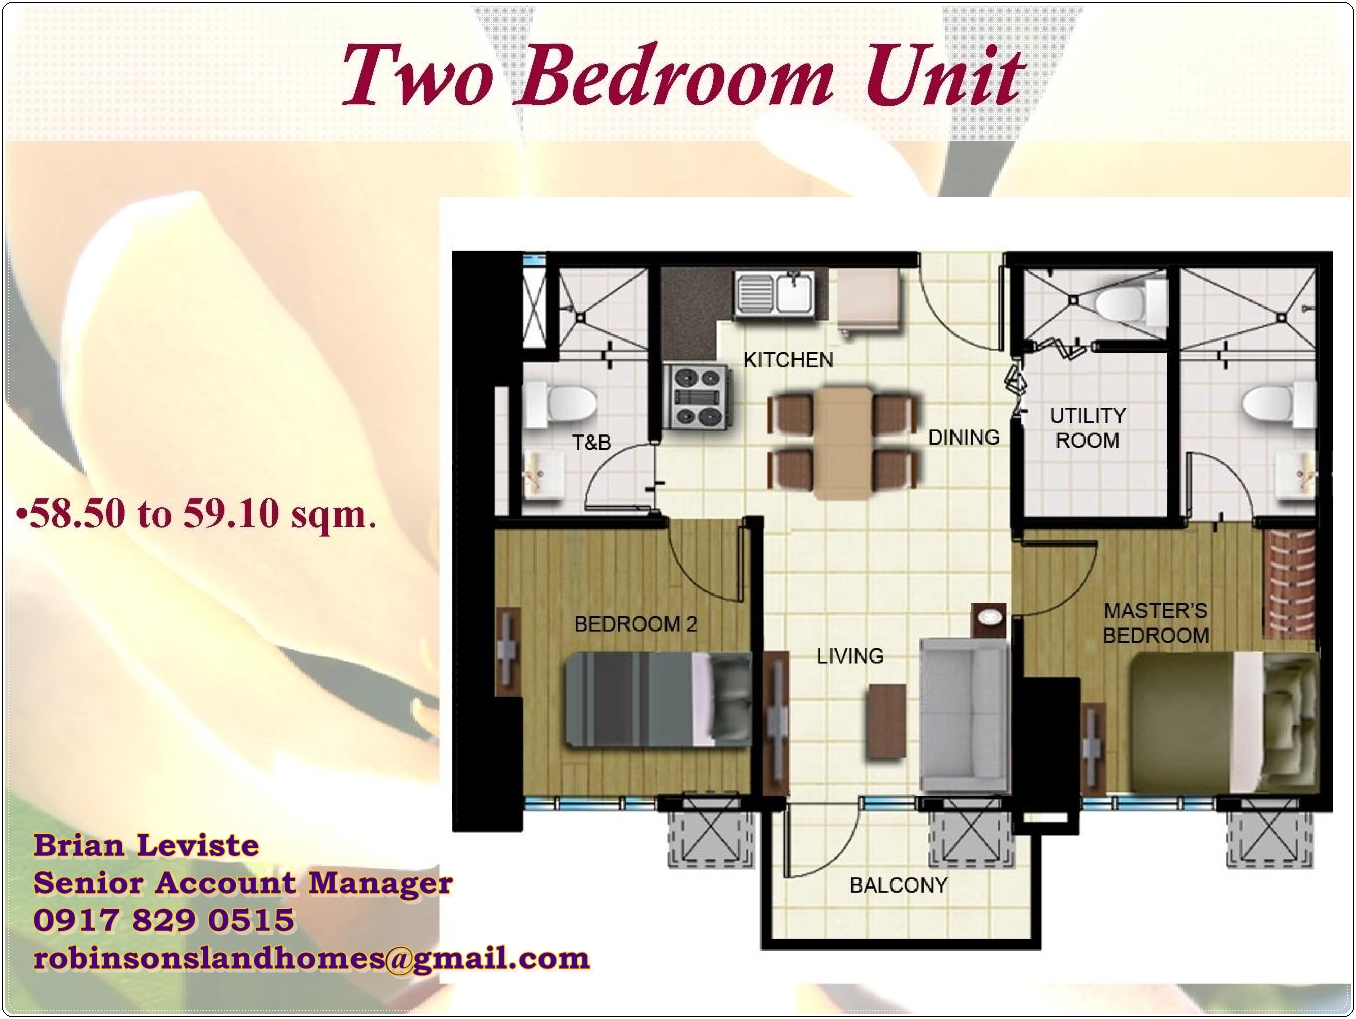 2 bedroom condos. with 2 bedroom condos